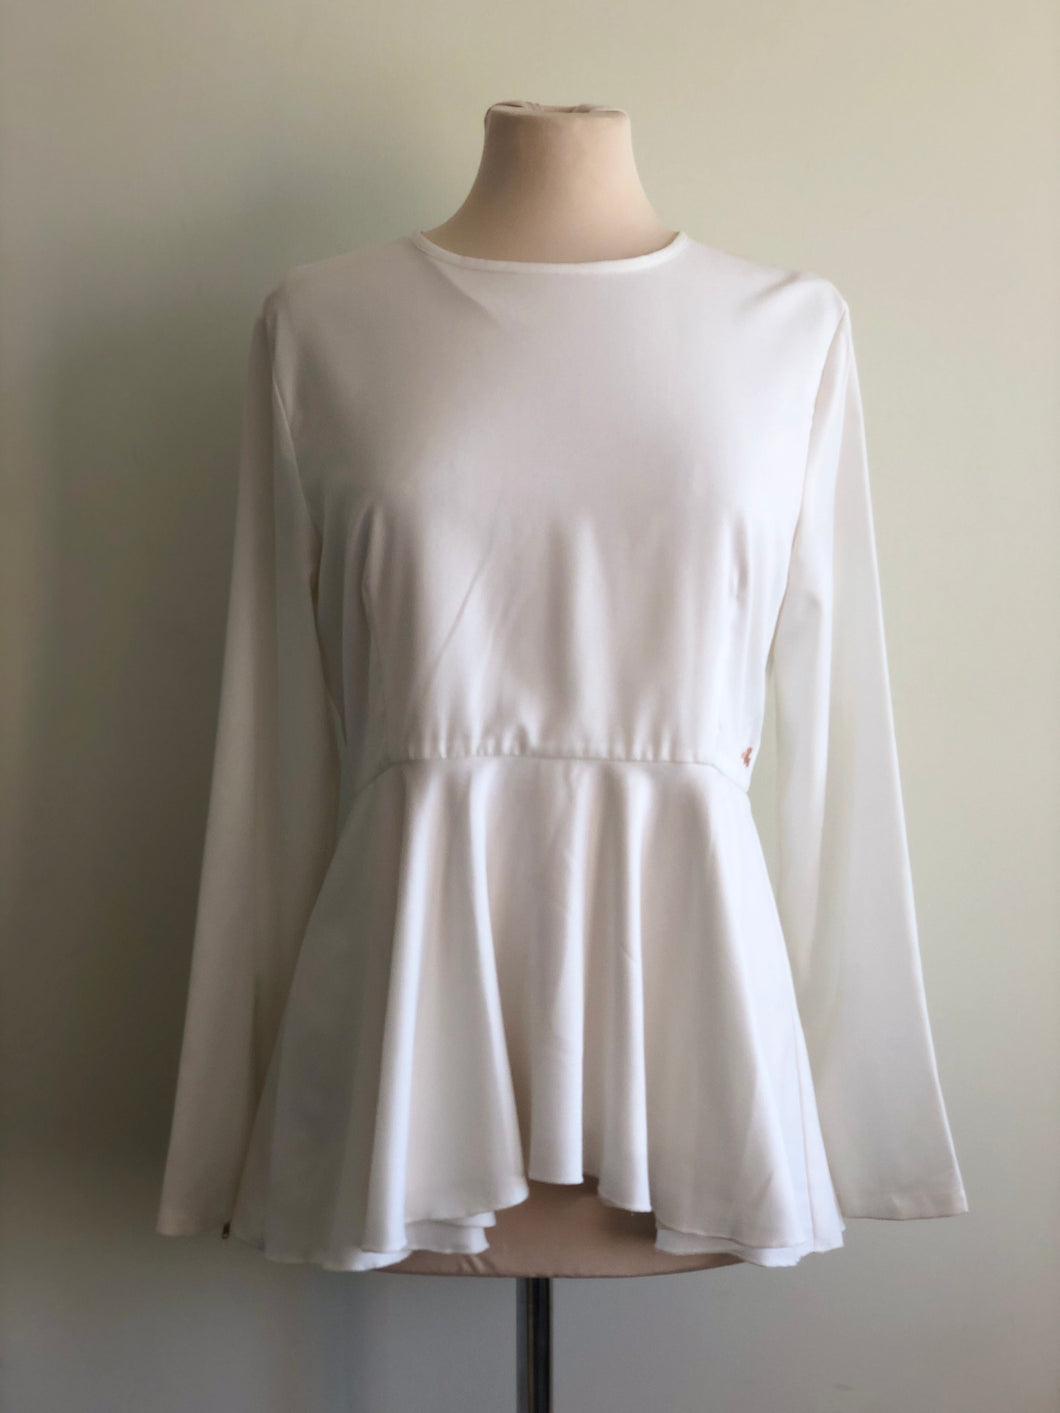 Elisia Waterfall Top in Basic White